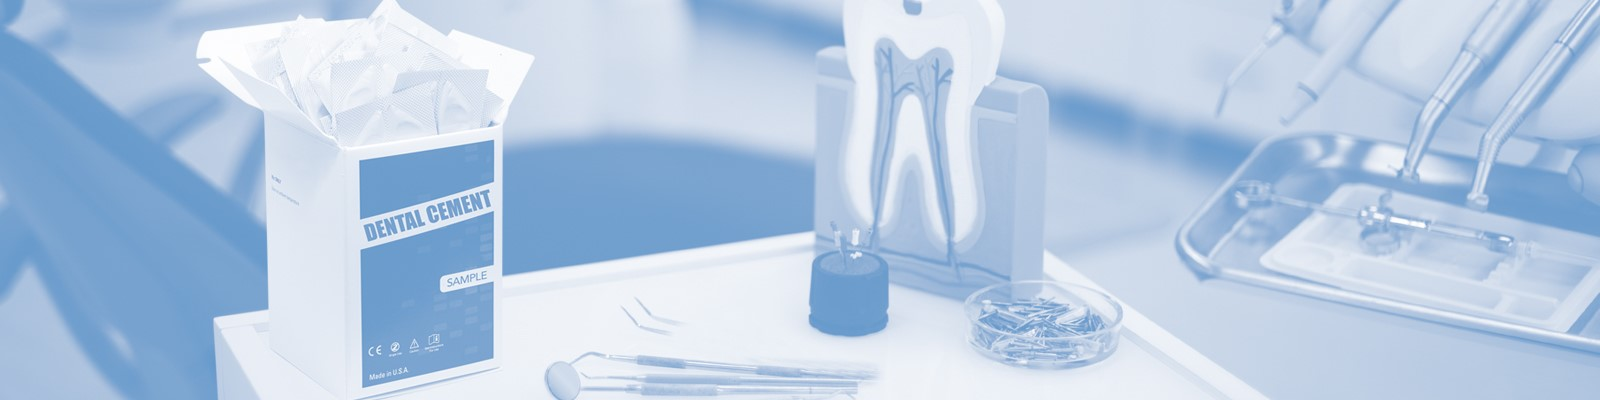 dental cement and glue packaging